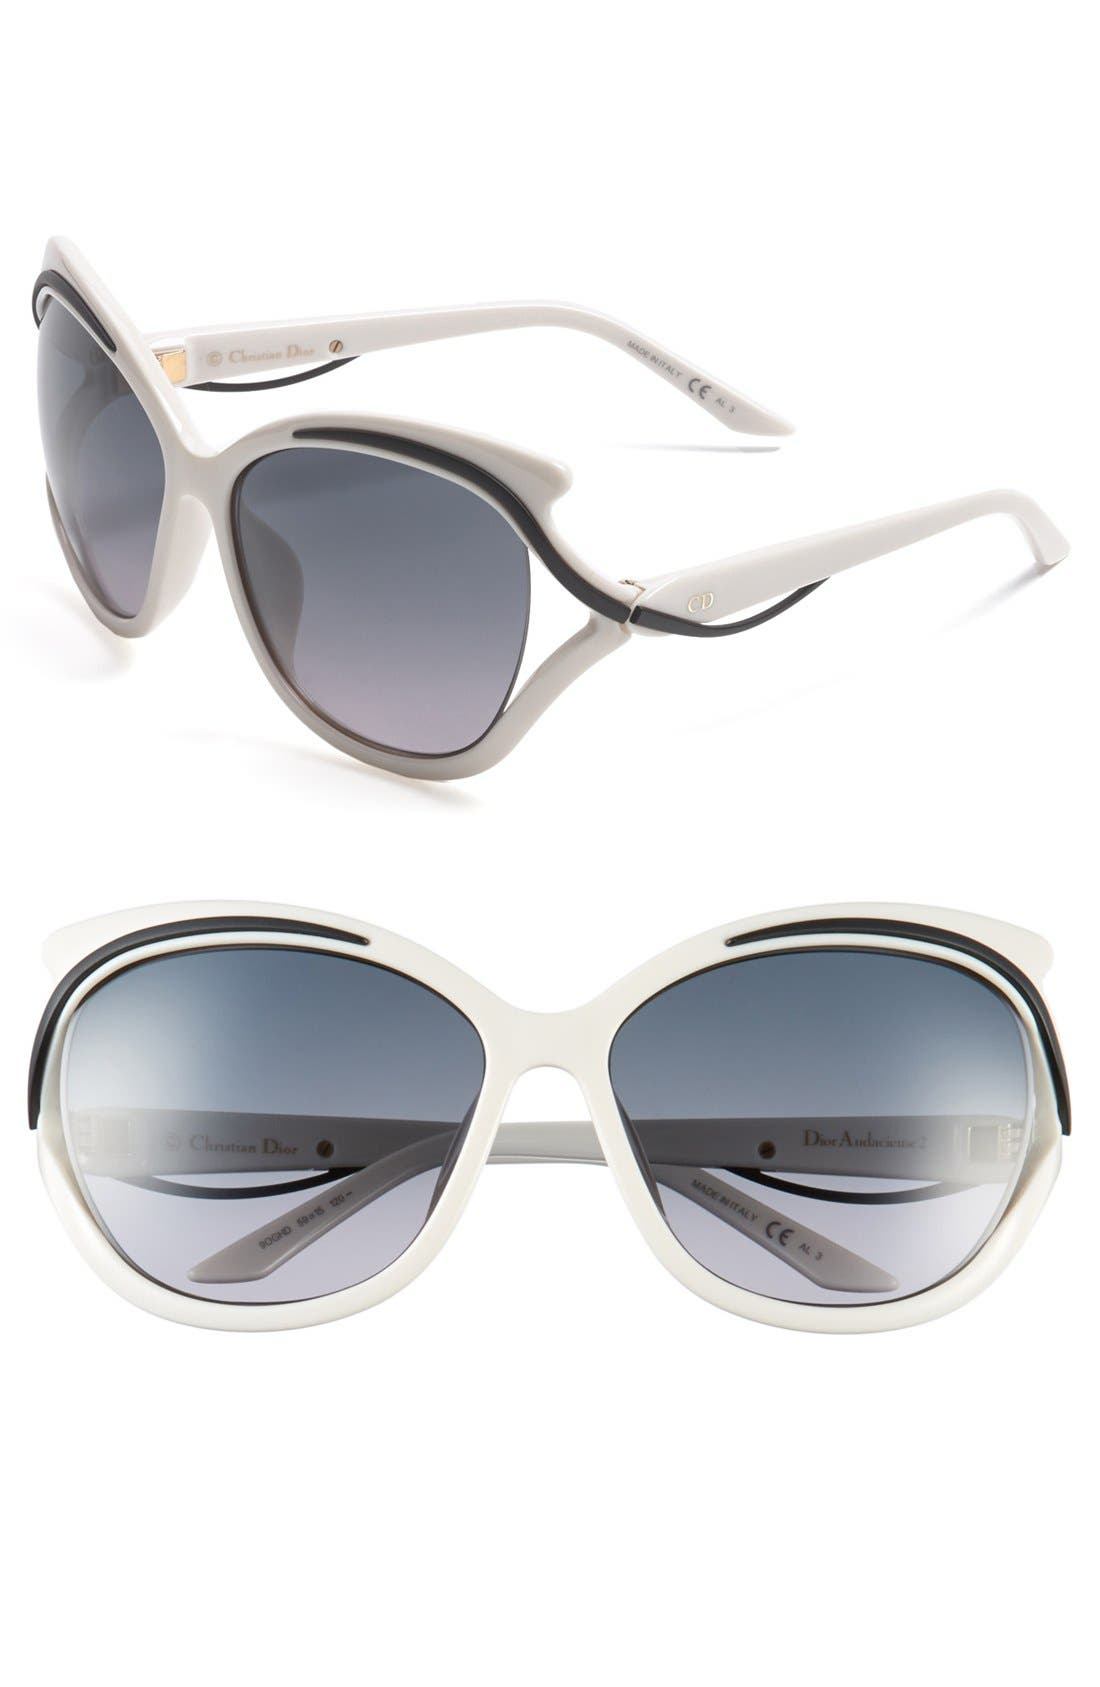 Main Image - Dior 'Audacieuse' 59mm Butterfly Sunglasses